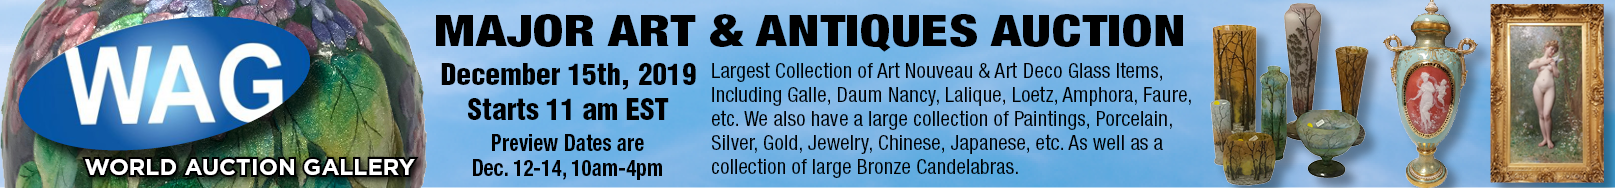 World Auction Gallery